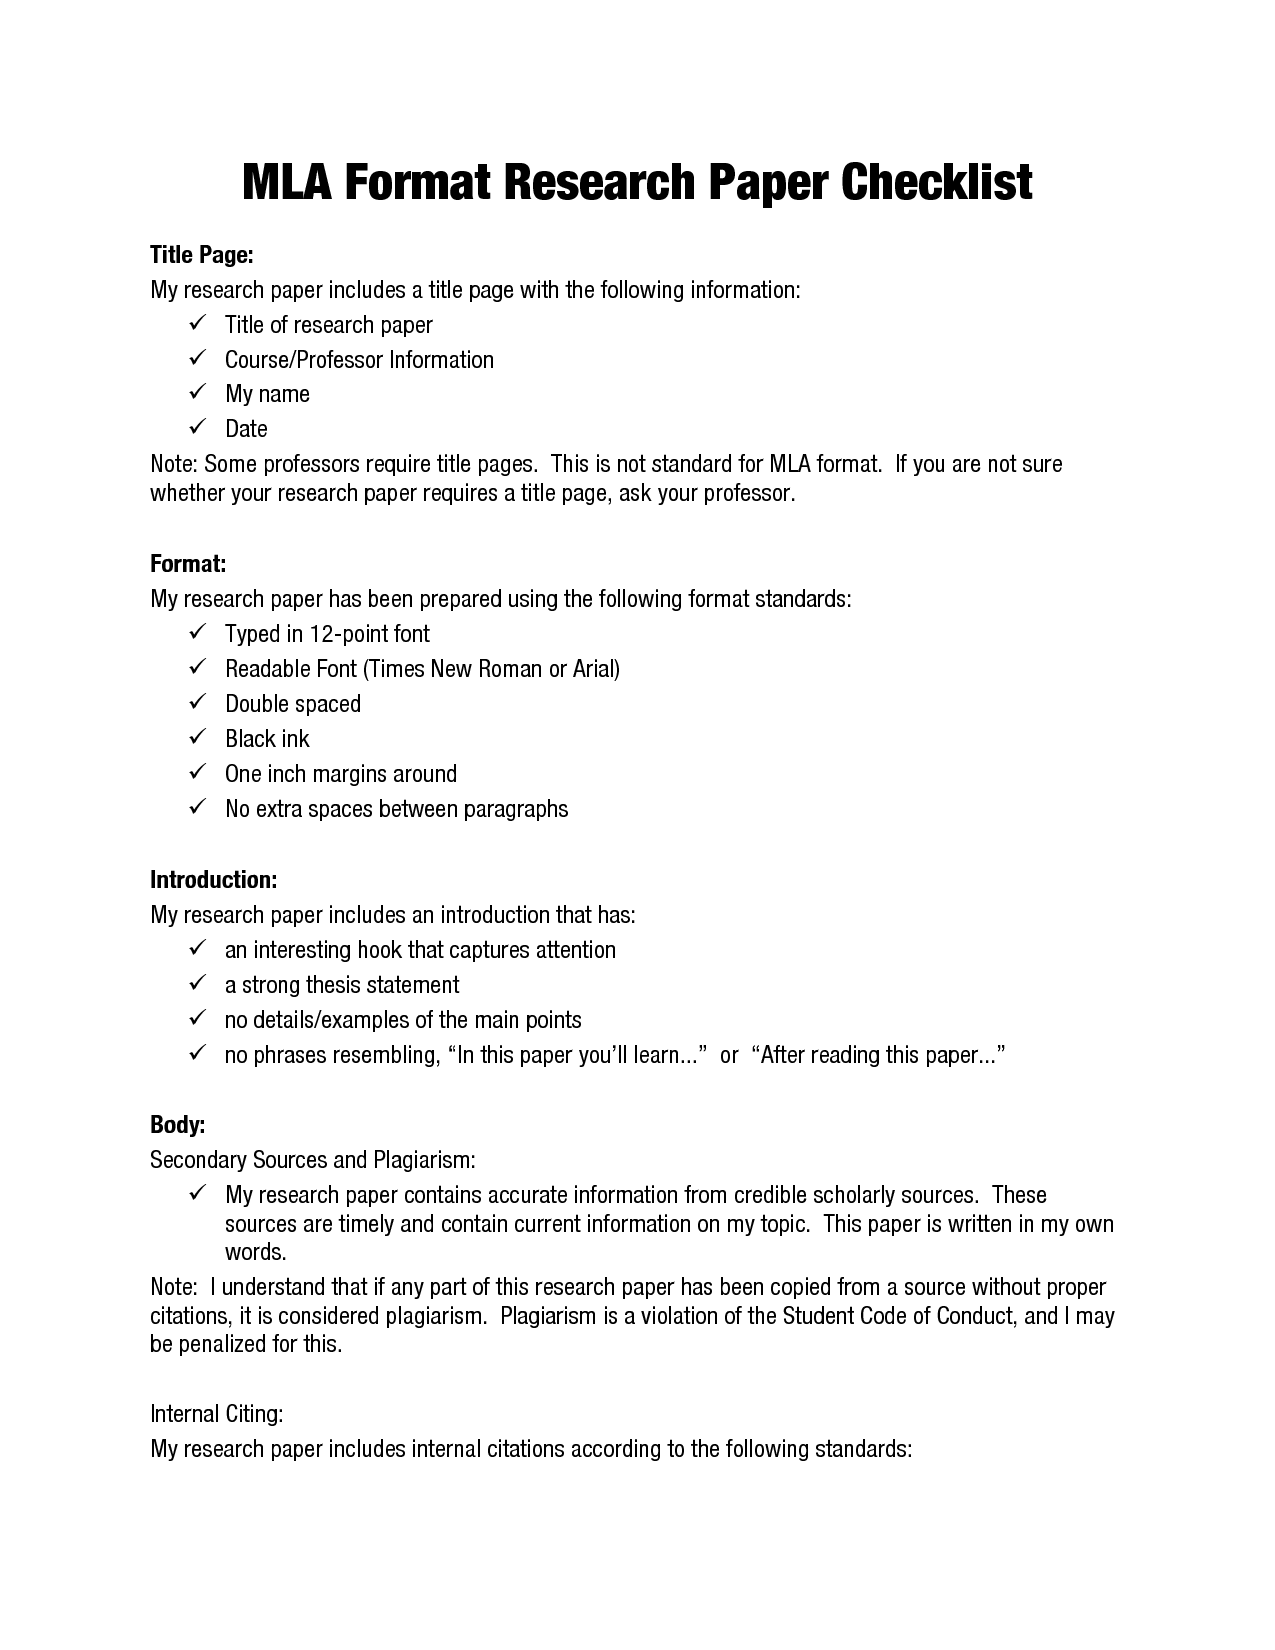 Essays On Fear Mla Format Research Papers  Mla Format Research Paper Checklist Topics For An Informative Essay also Intersectionality Essay Mla Format Research Papers  Mla Format Research Paper Checklist  Crime Prevention Essay